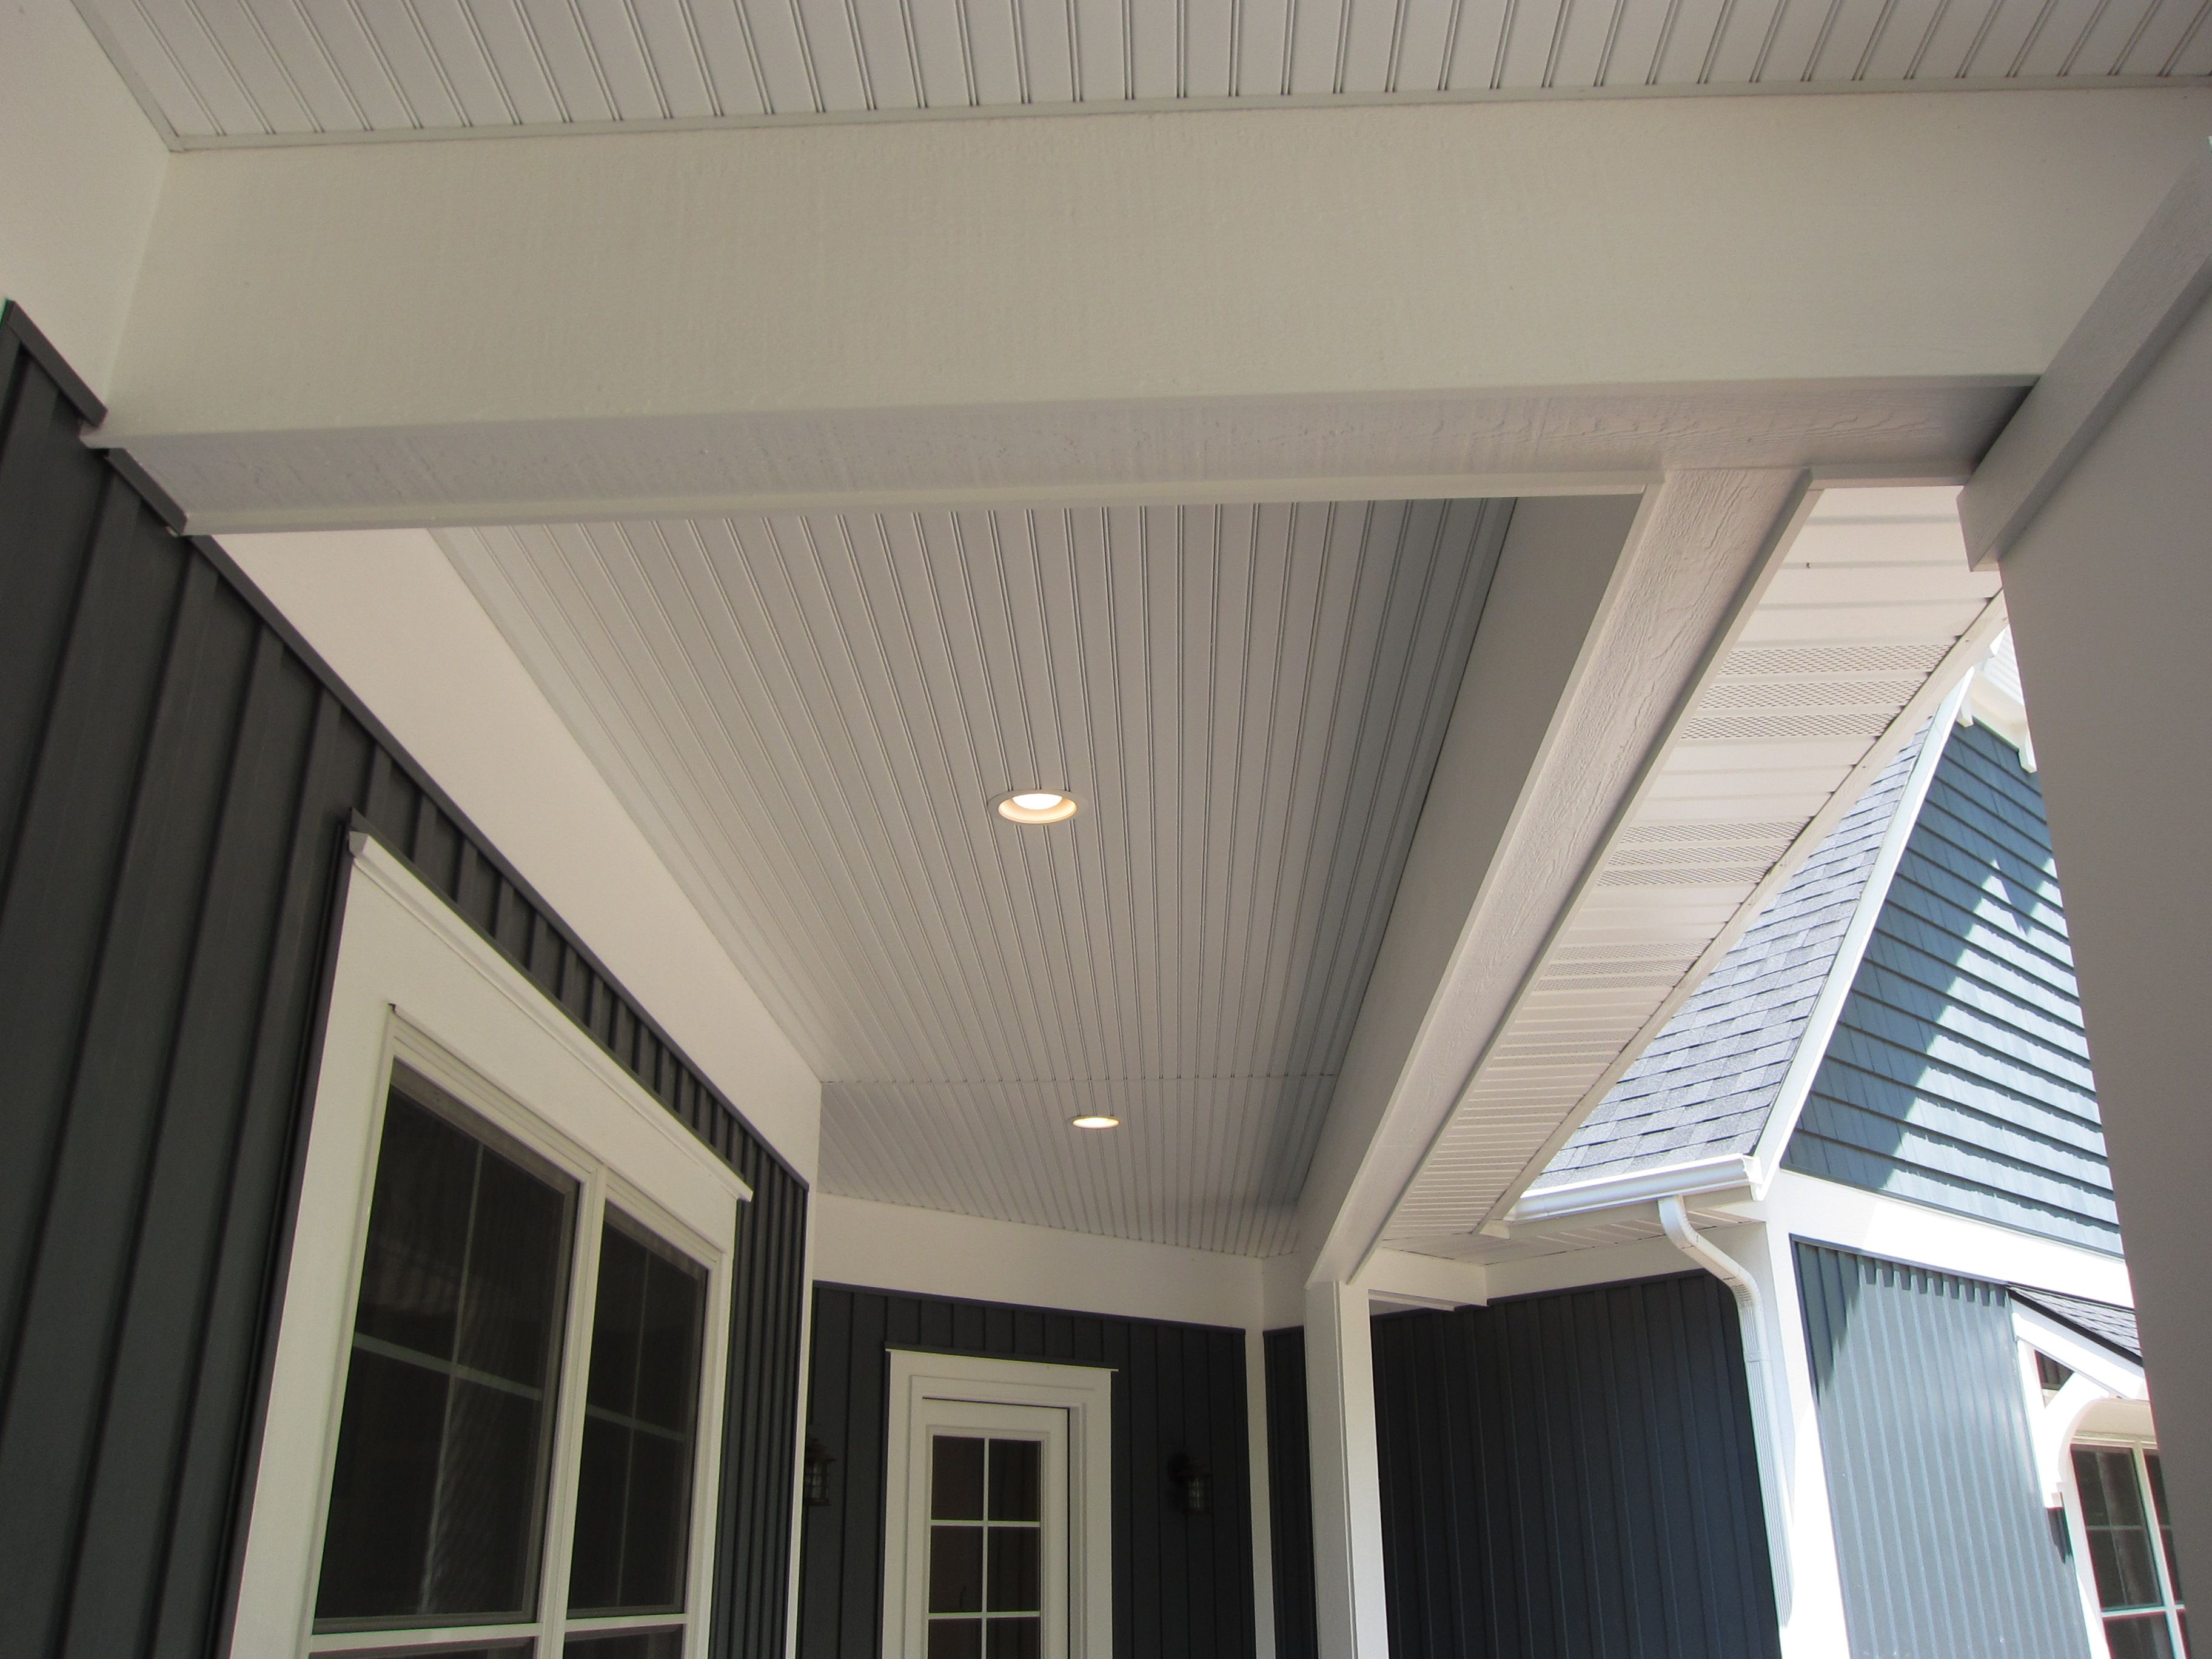 Pin By Shannon Thompson On New House Ideas Porch Ceiling House Paint Exterior Patio Ceiling Ideas